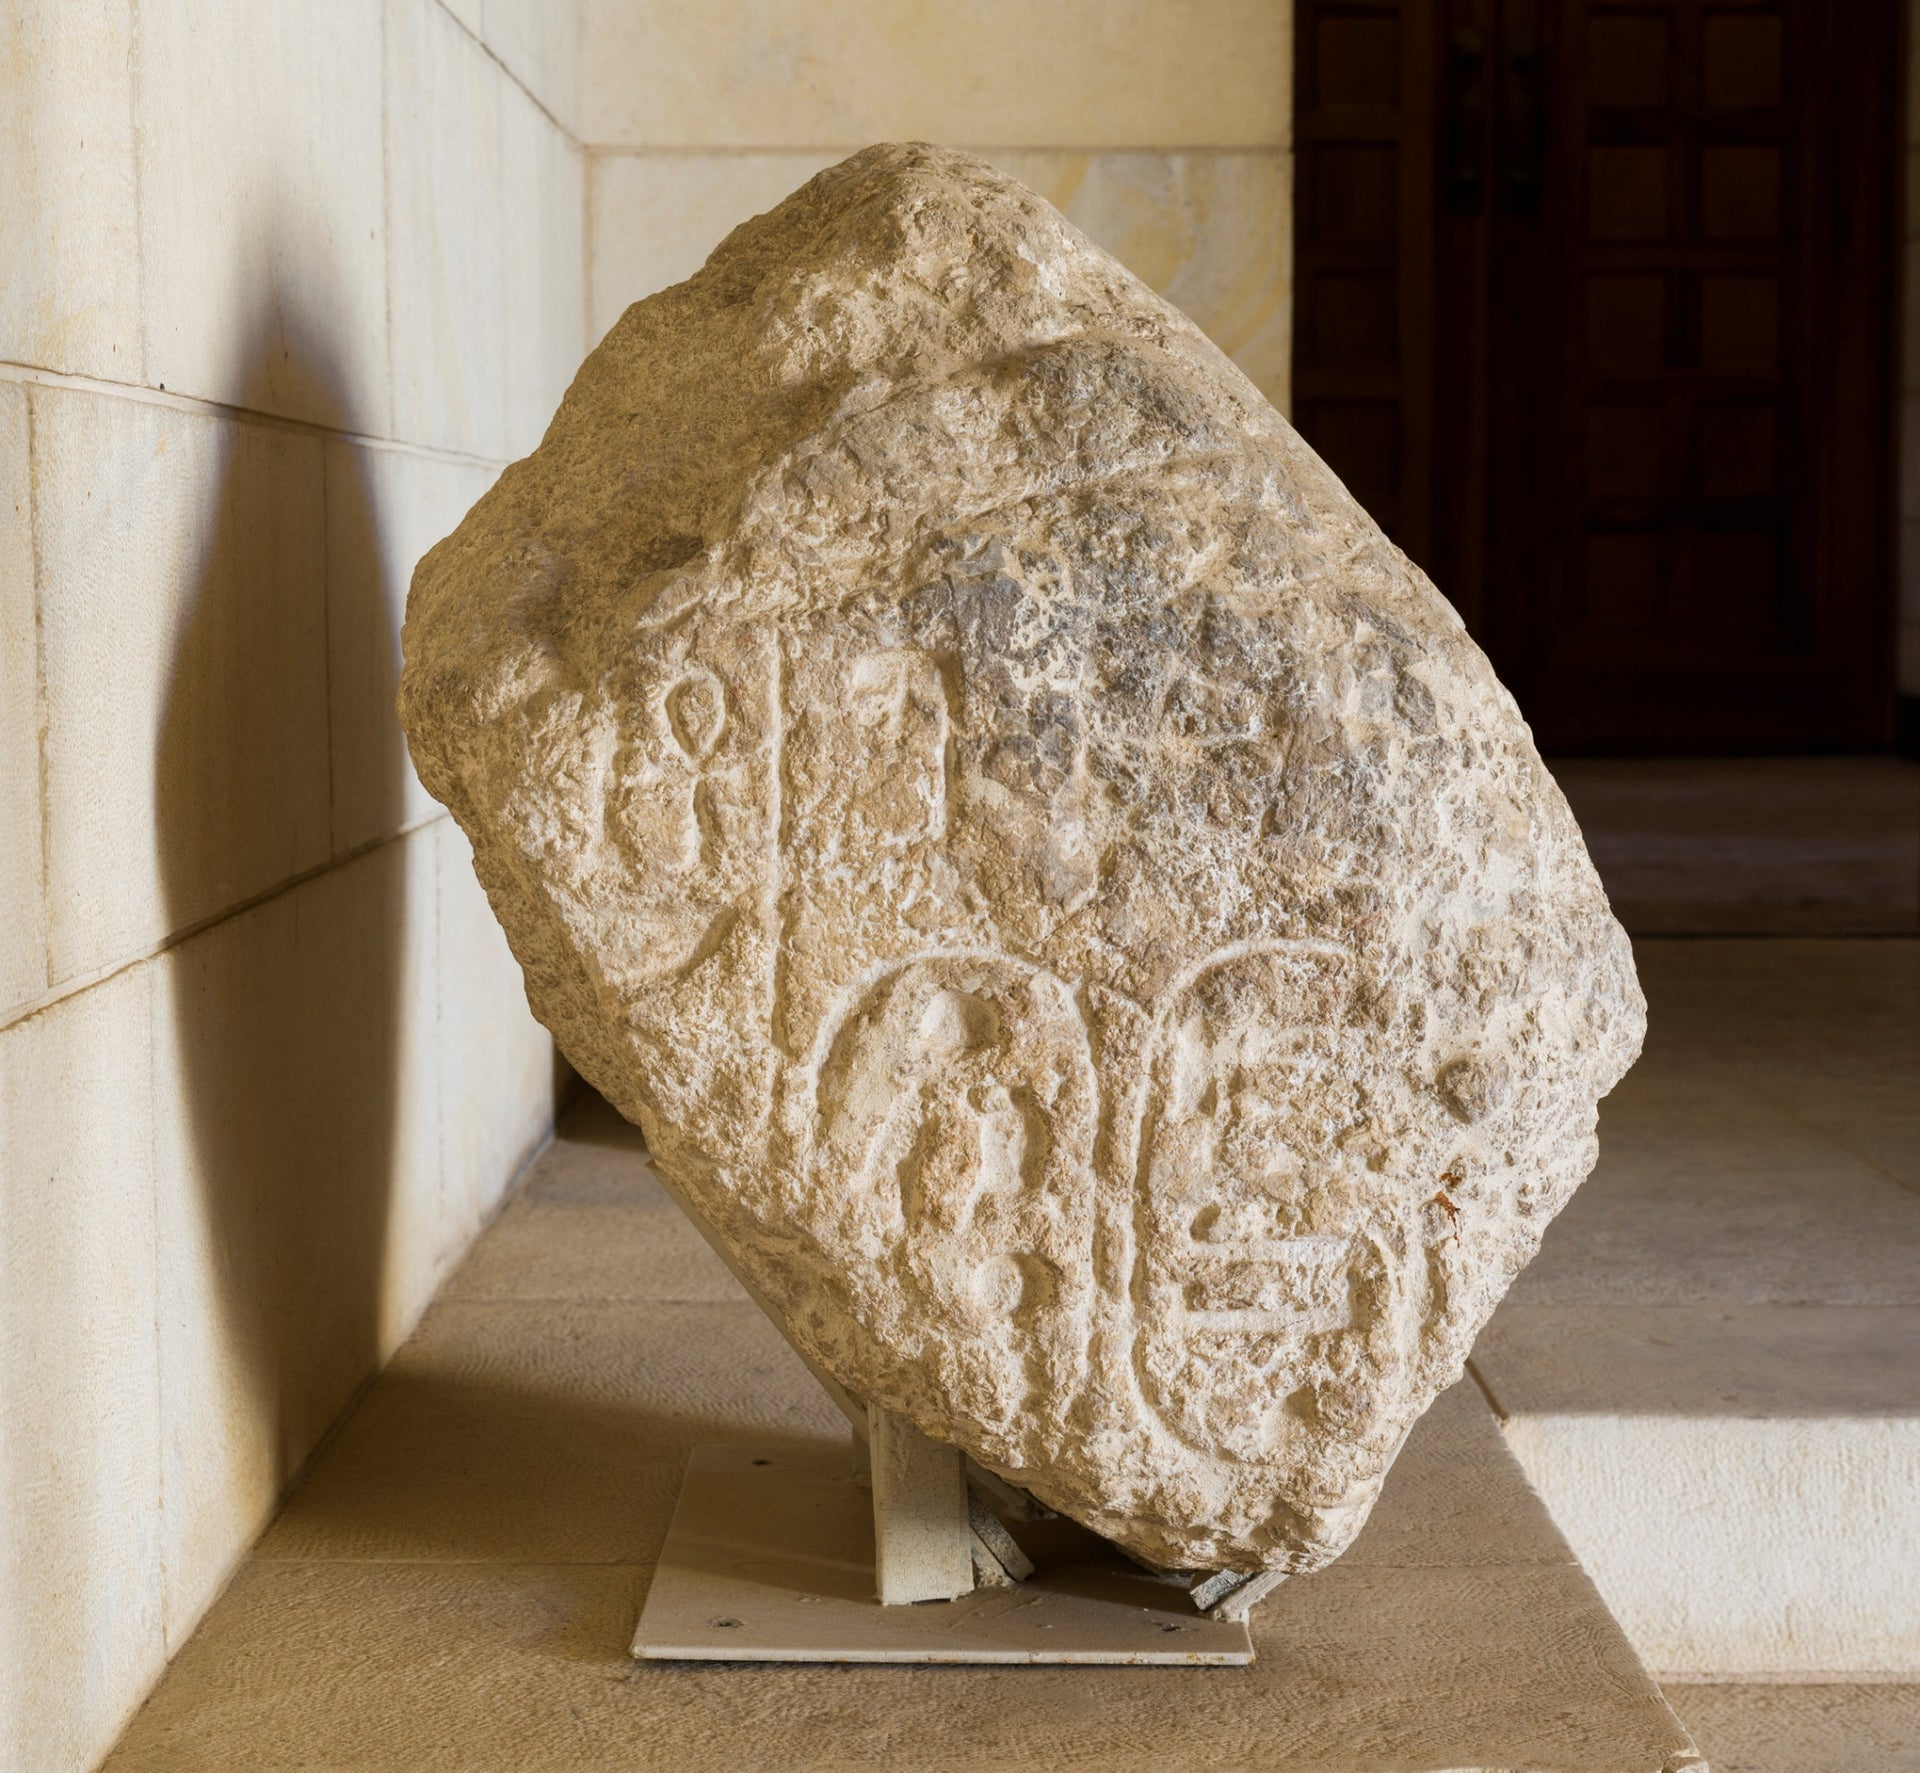 Sheshonq's name carved into a block of stone, possibly part of a victory stele, found in Megiddo, northern Israel